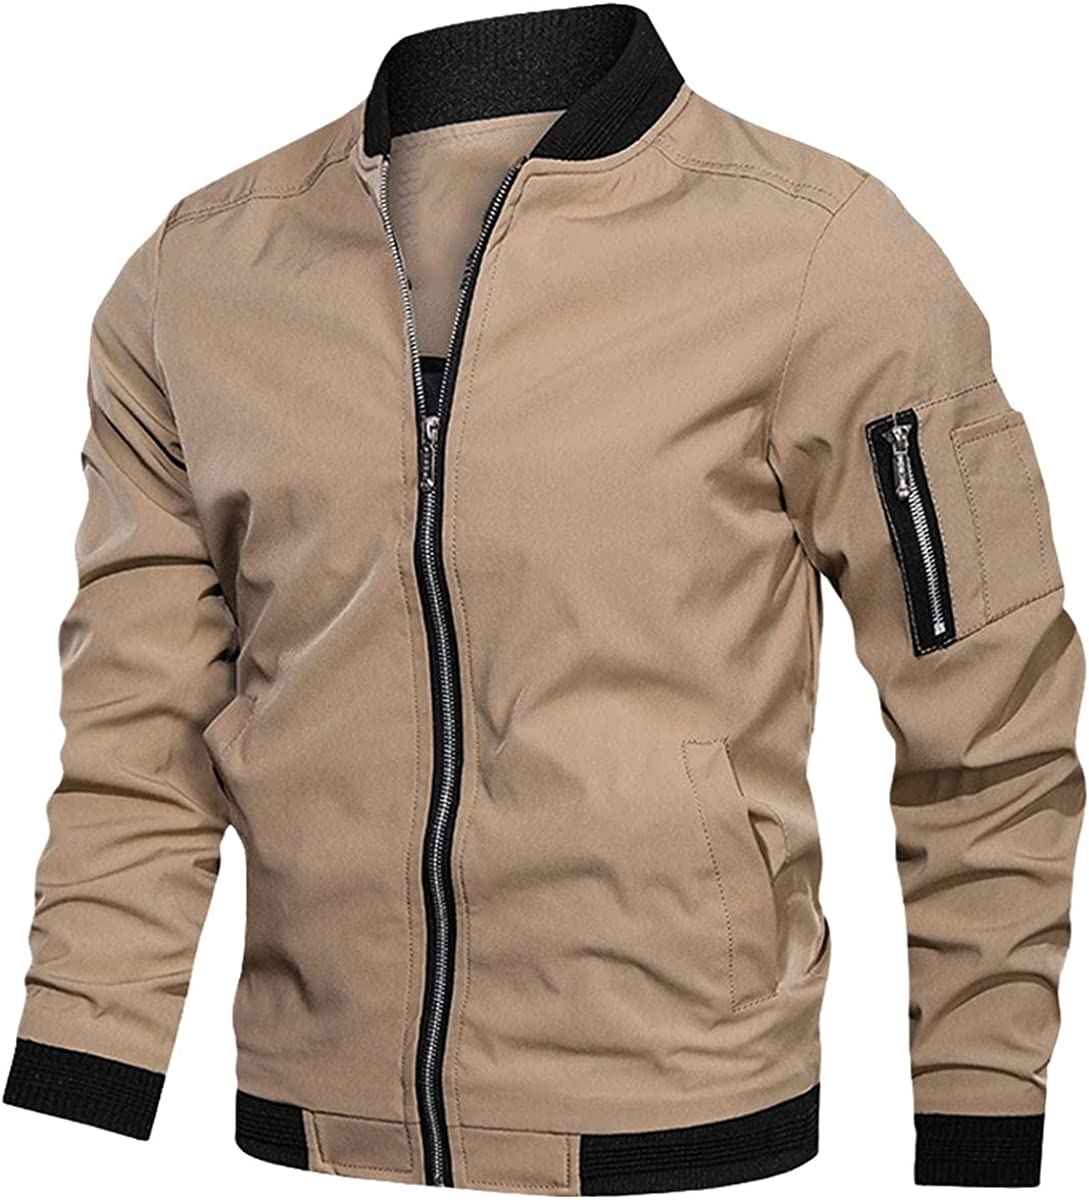 Men's Jackets And Coats Bomber Jackets Spring And Autumn Fashion Military Uniform Outdoor Clothing